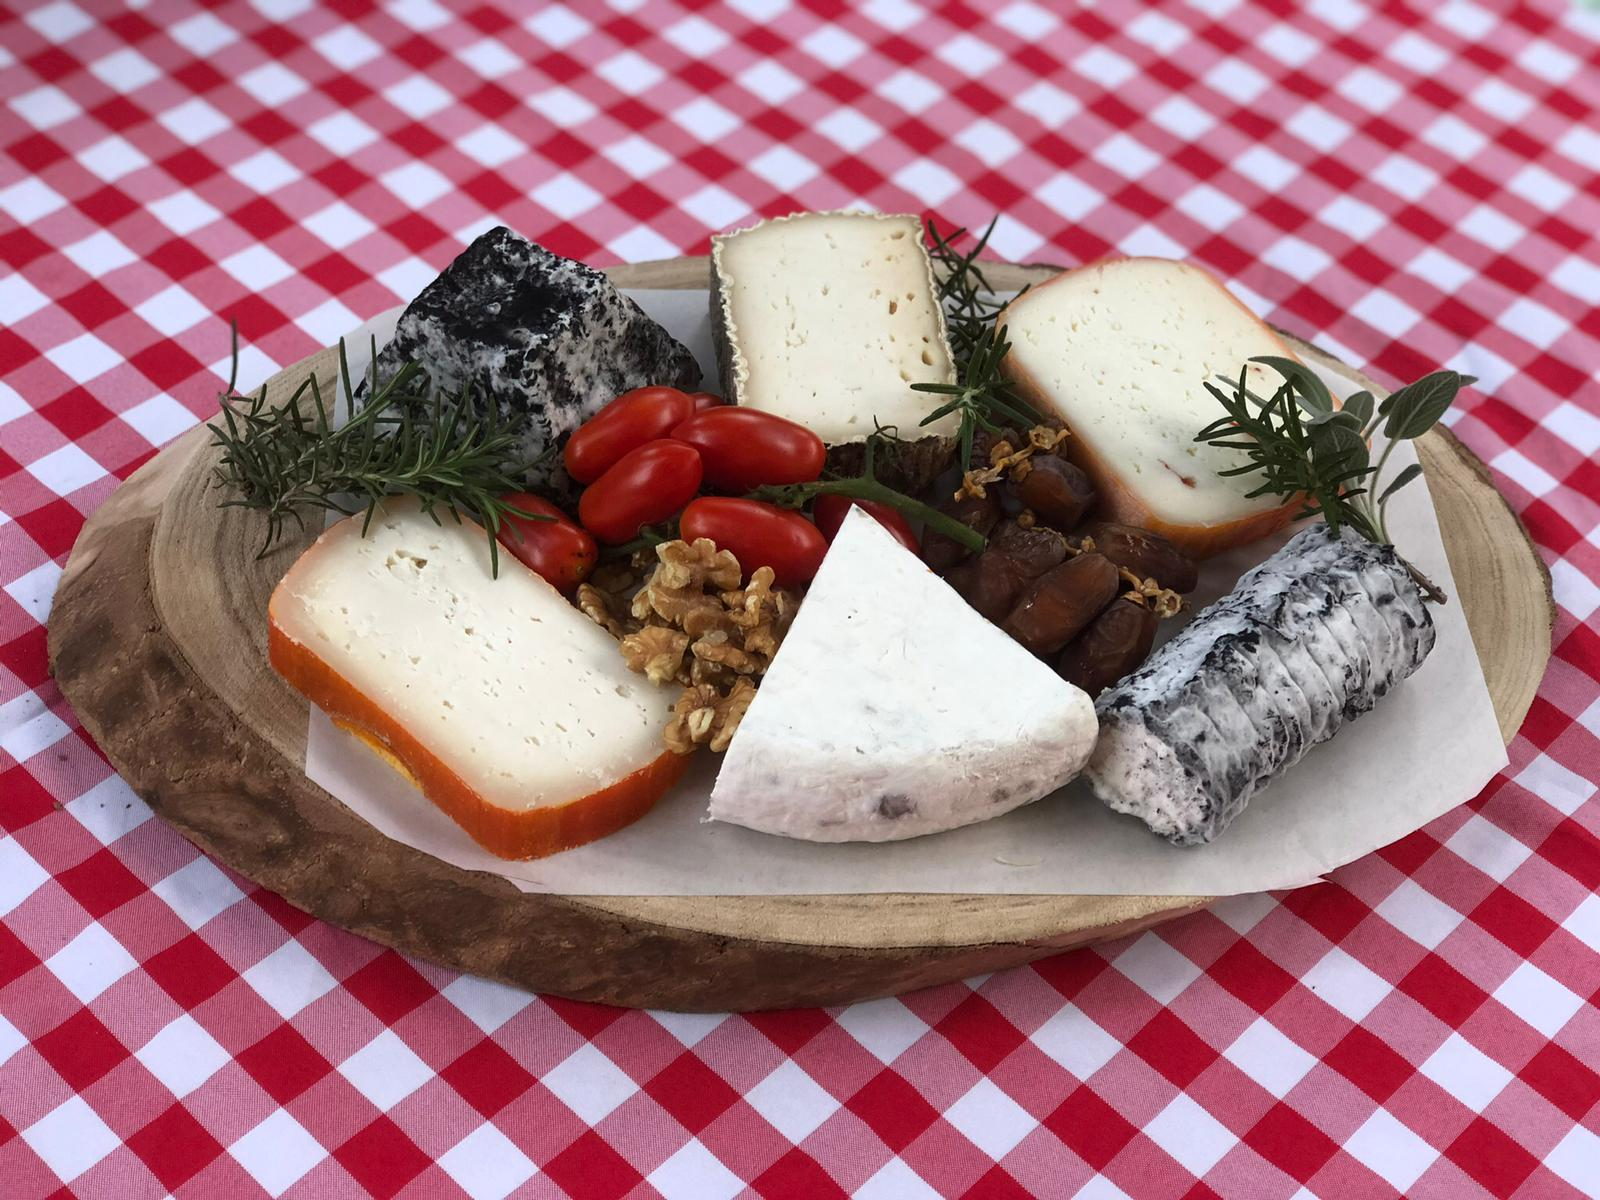 Cheese Platter for 7-9 diners with a designed oval board